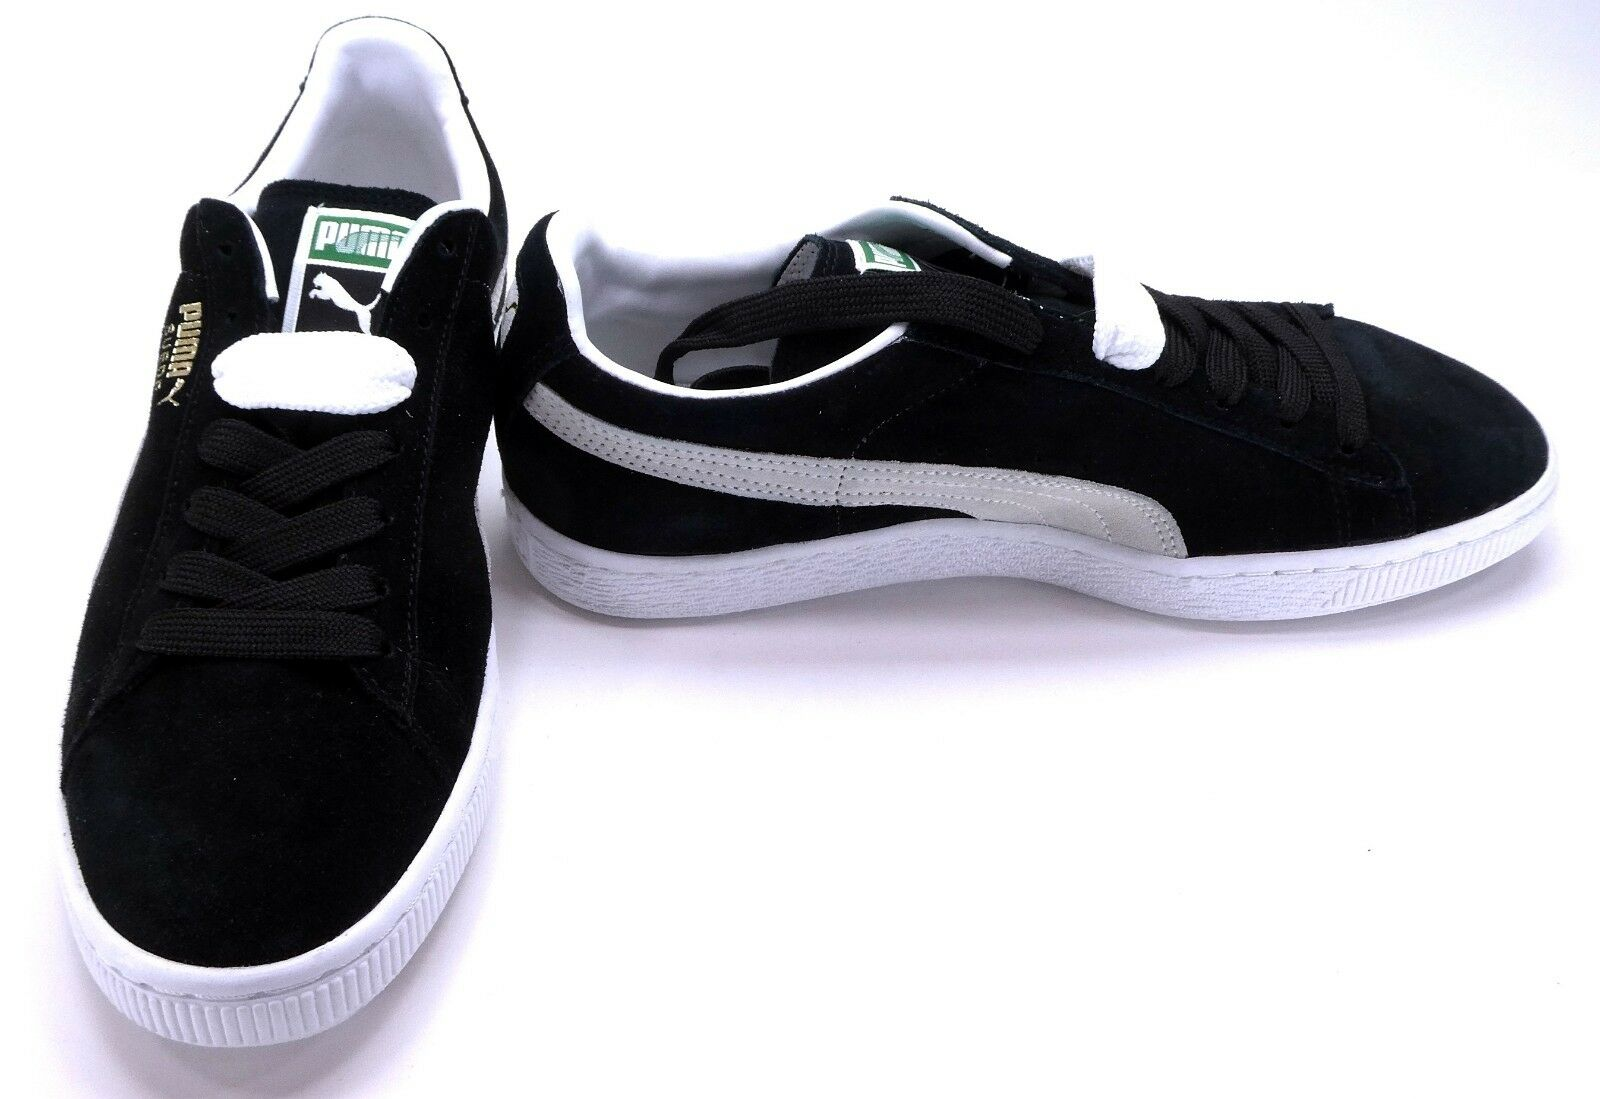 Puma shoes Suede Athletic Black Cream White Sneakers Size 8.5